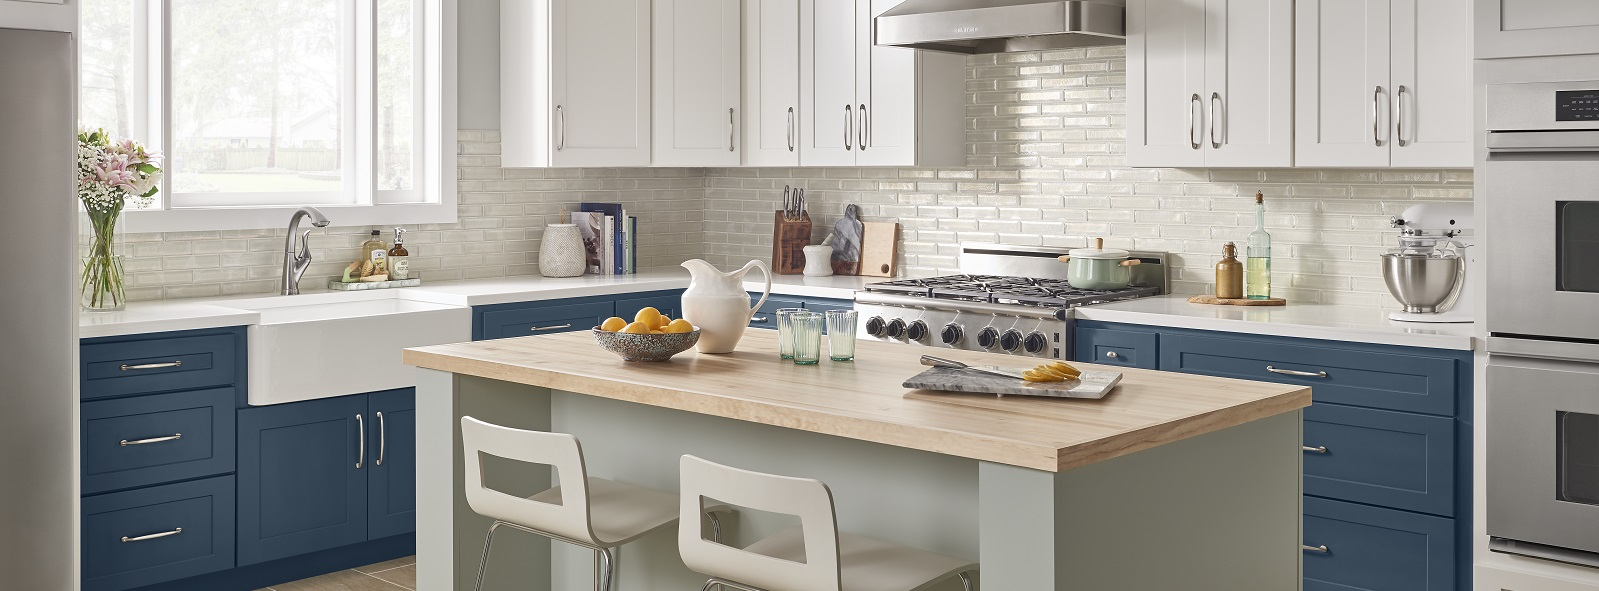 Everything You Need to Know About Two-Tone Kitchen Cabinets